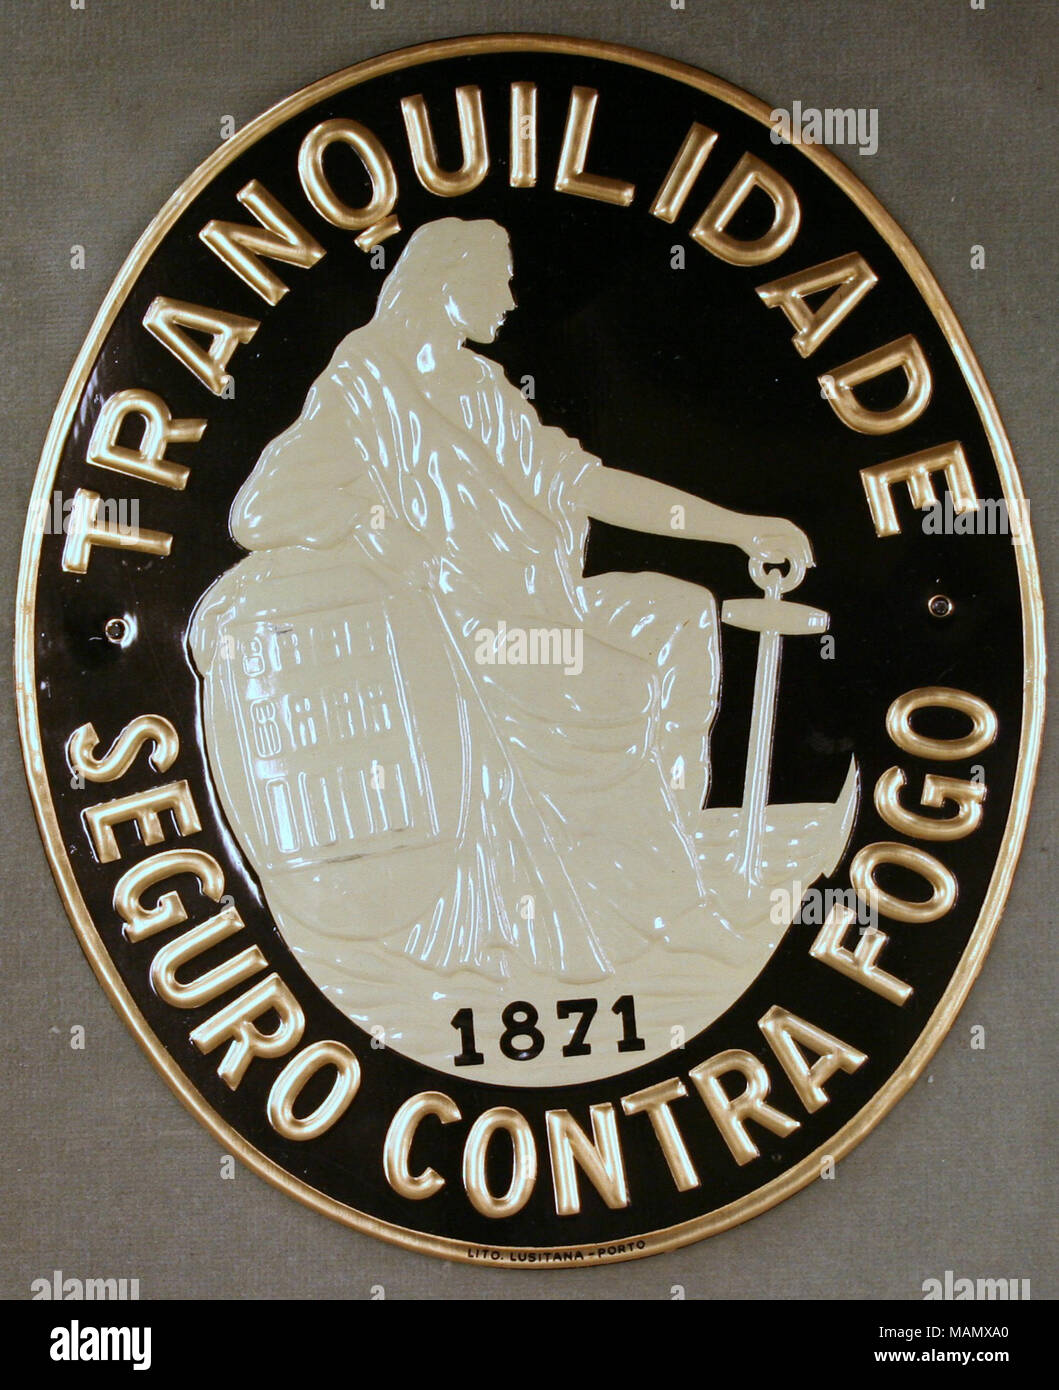 Tranquilidade Portuense In Porto Portugal Showing Raised Ivory Figure Seated And Company Name Gold Lettering Around Edge Title Fire Mark For